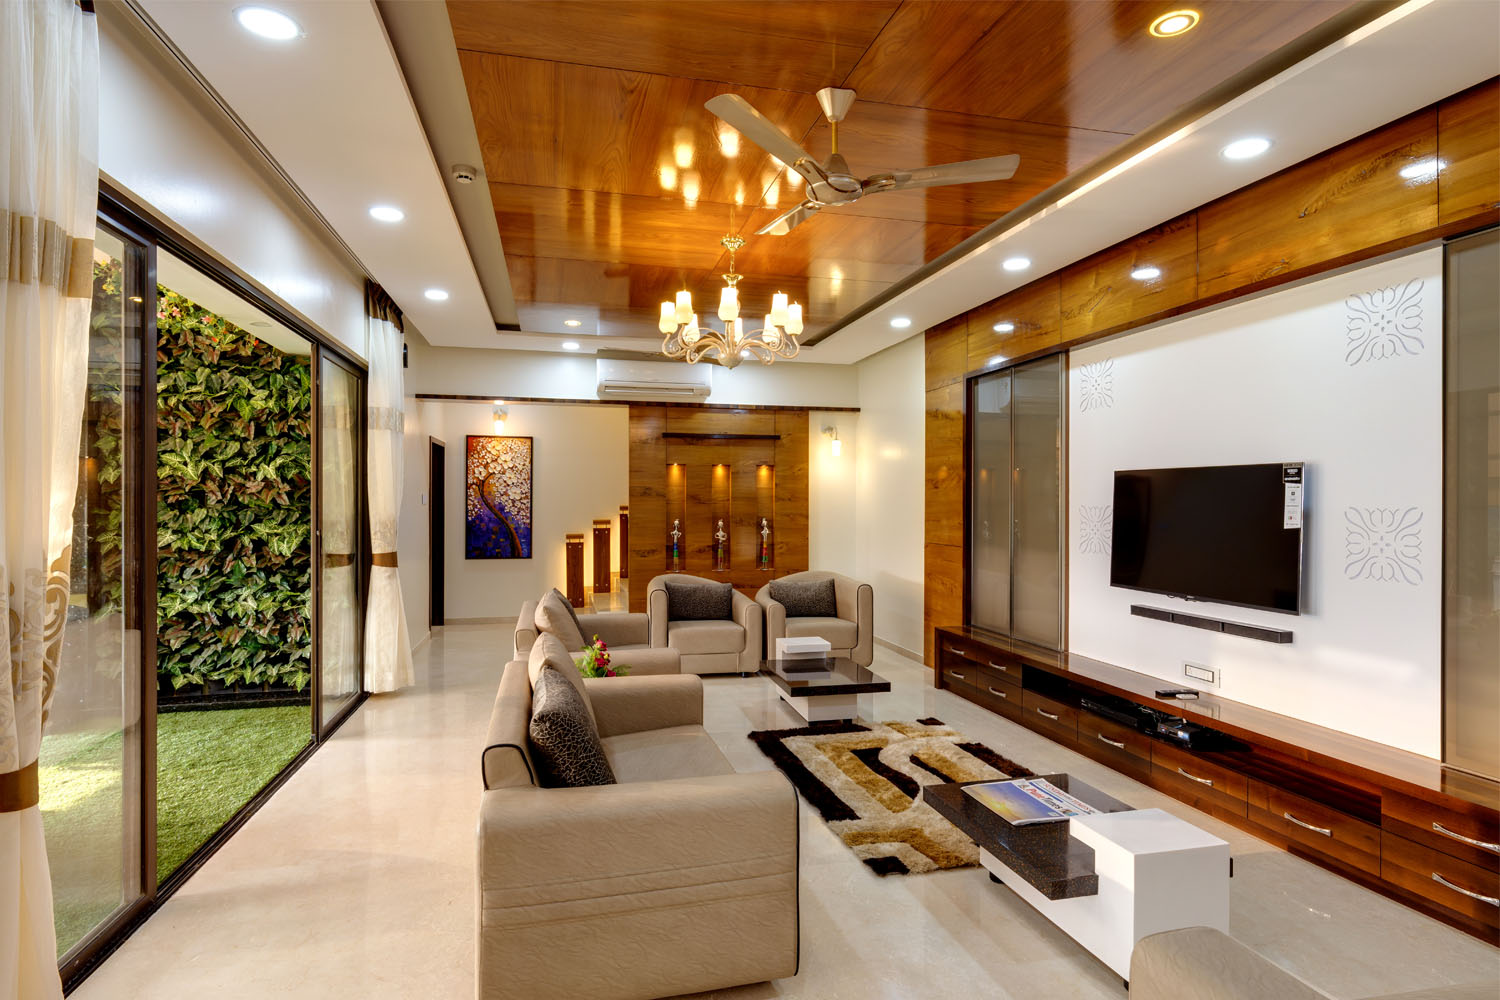 Best interior designer pune nerlekar interior designing for Interior design pictures